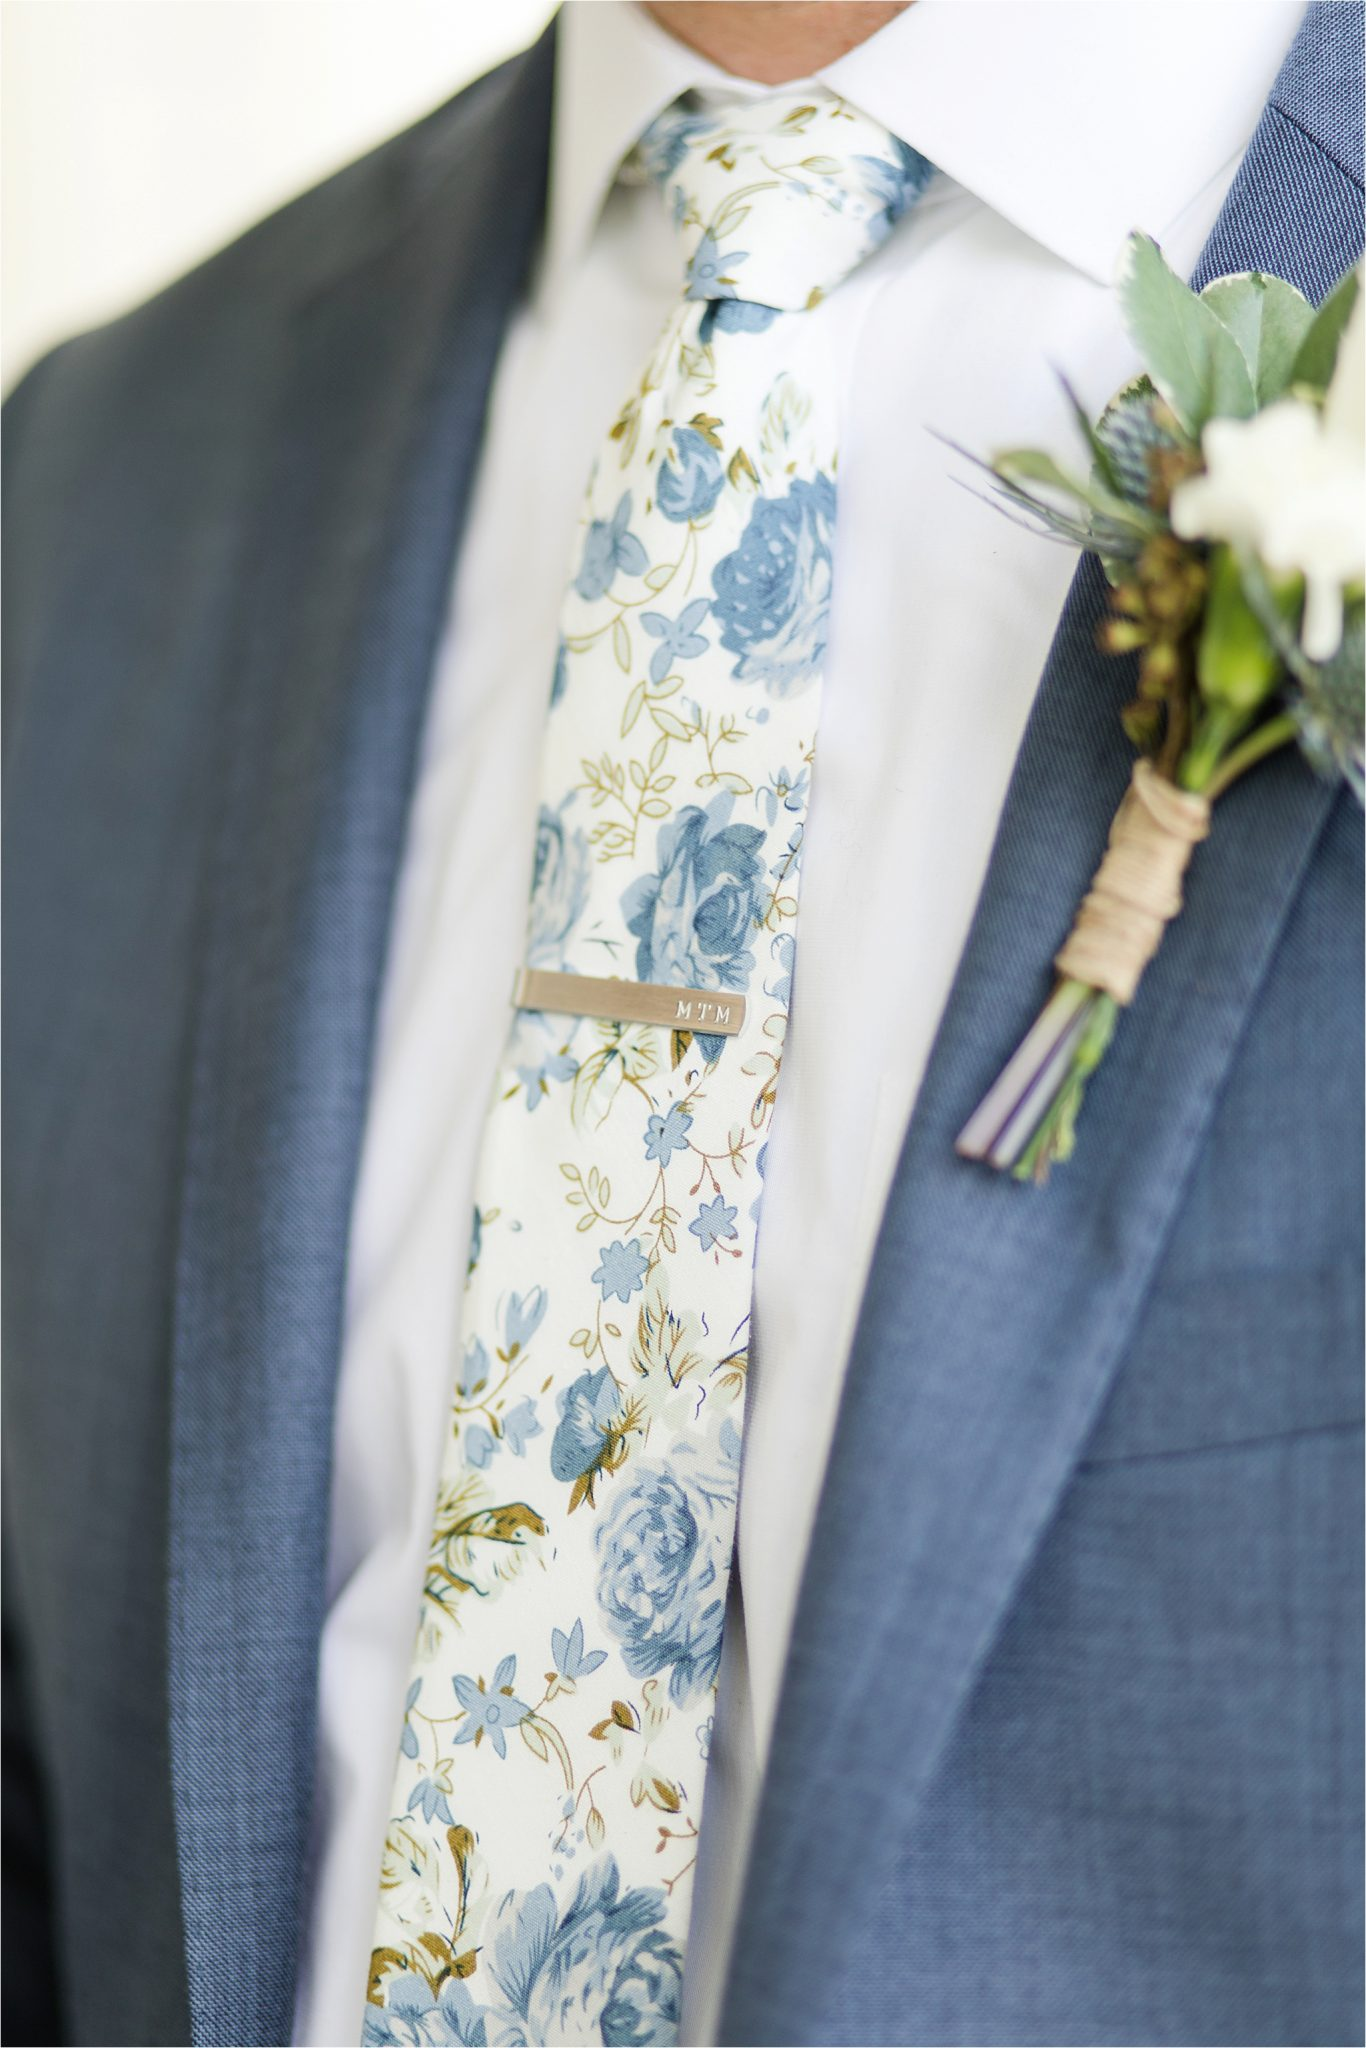 Pastel Themed Wedding-The Chapel at the Waters-Montgomery Alabama Photographer-Miles & Meredyth-Blue Themed Wedding-Alabama Wedding Venue-Groom Boutonnière-Blue Grooms Tuxedo-Grooms Tie